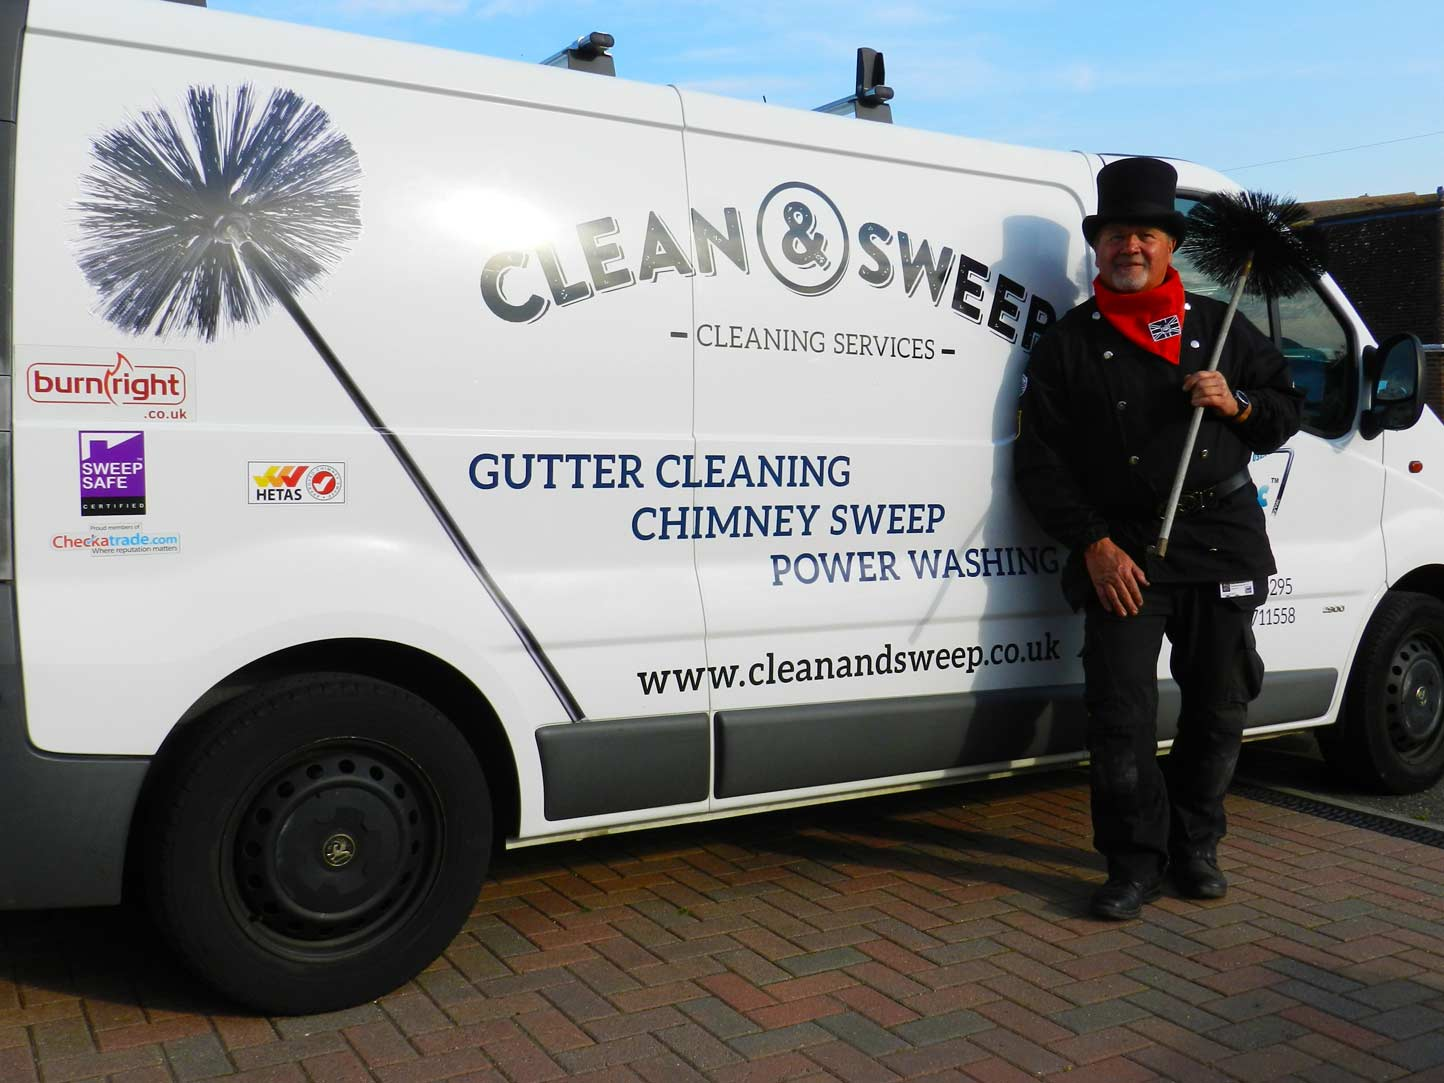 chimney sweeping Clean and sweep - Chimney sweep based in Brighton/Saltdean